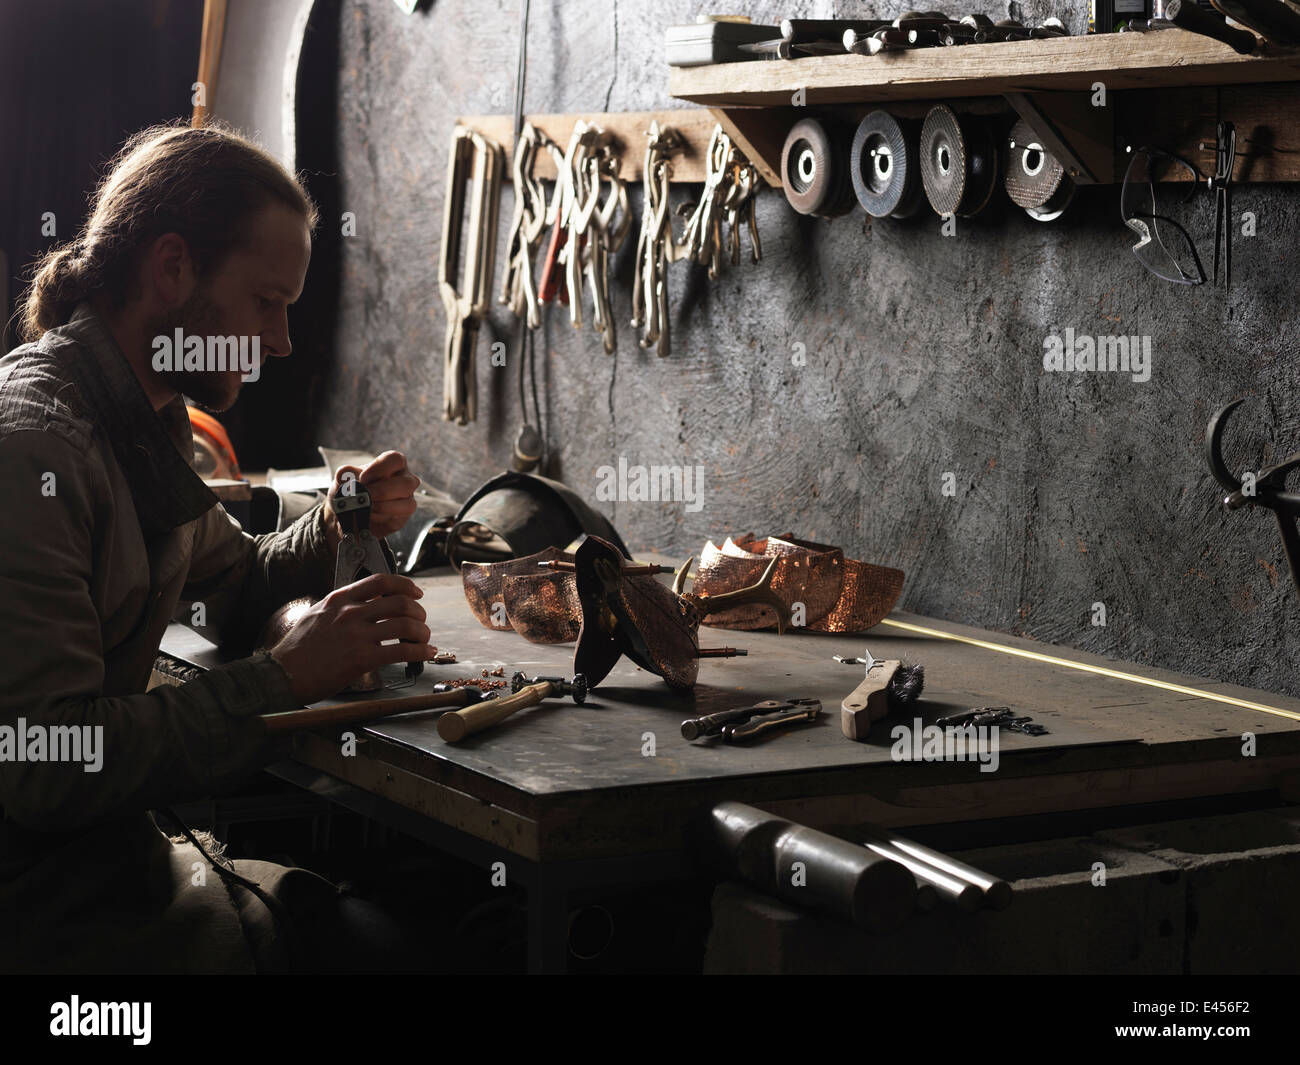 Blacksmith working with copper rivets in workshop - Stock Image